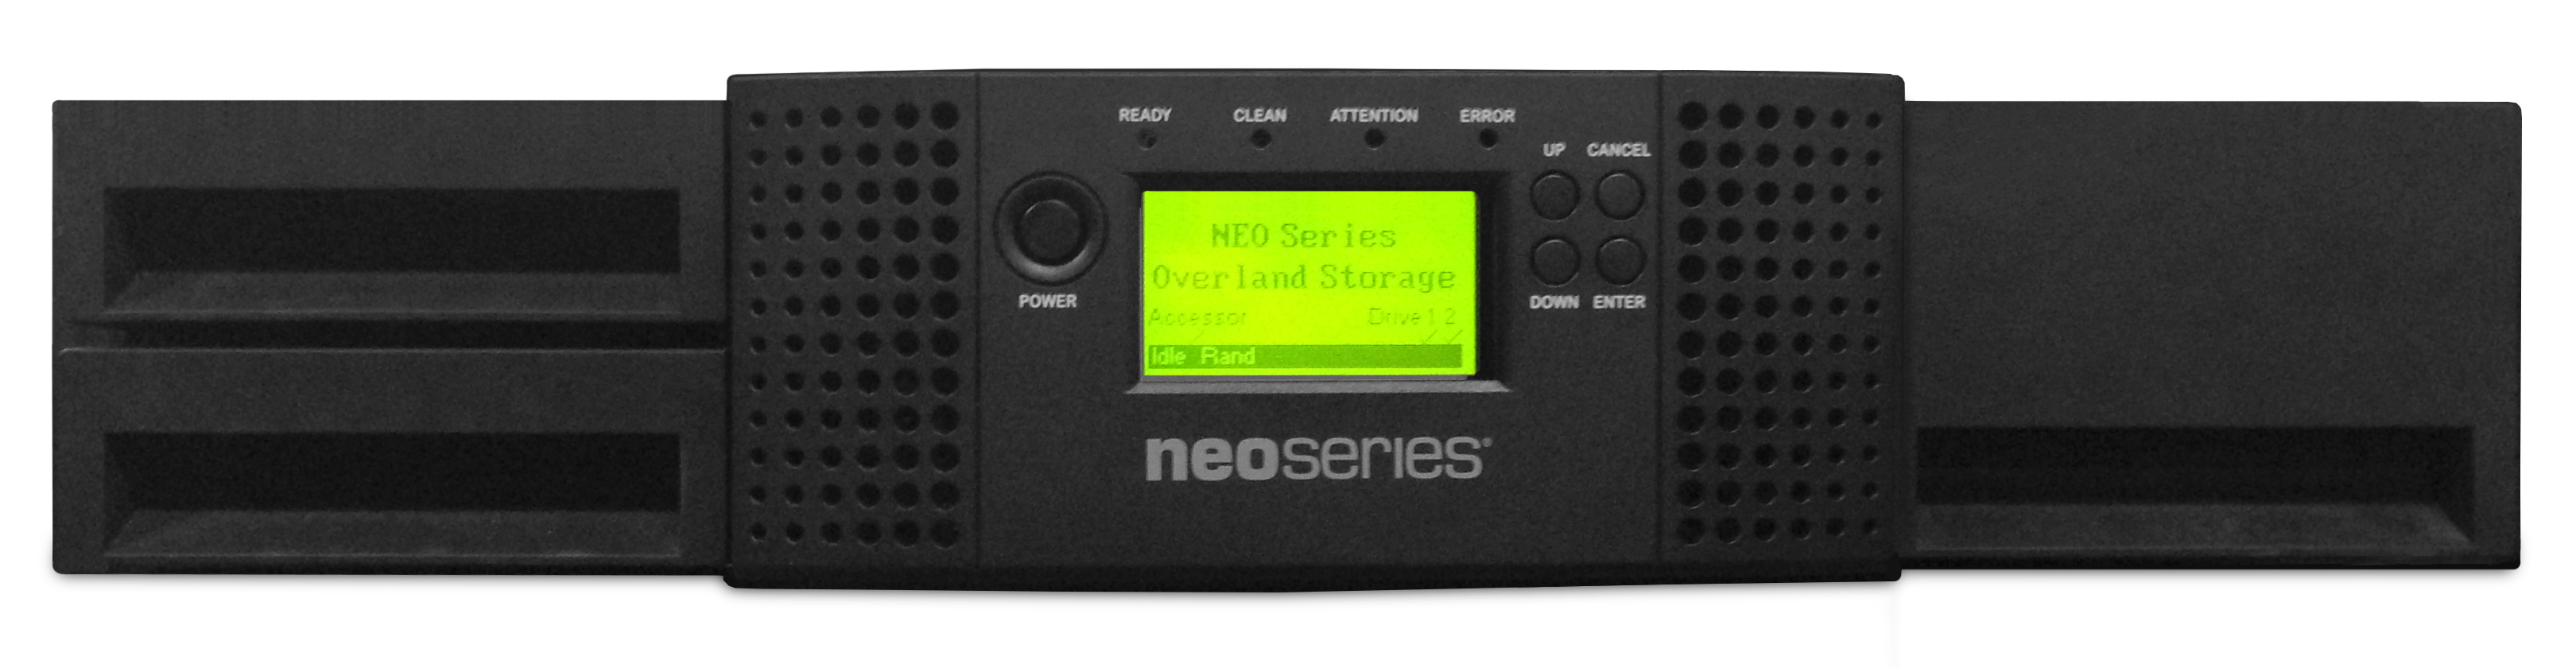 NEOs-T24-large-new.jpg